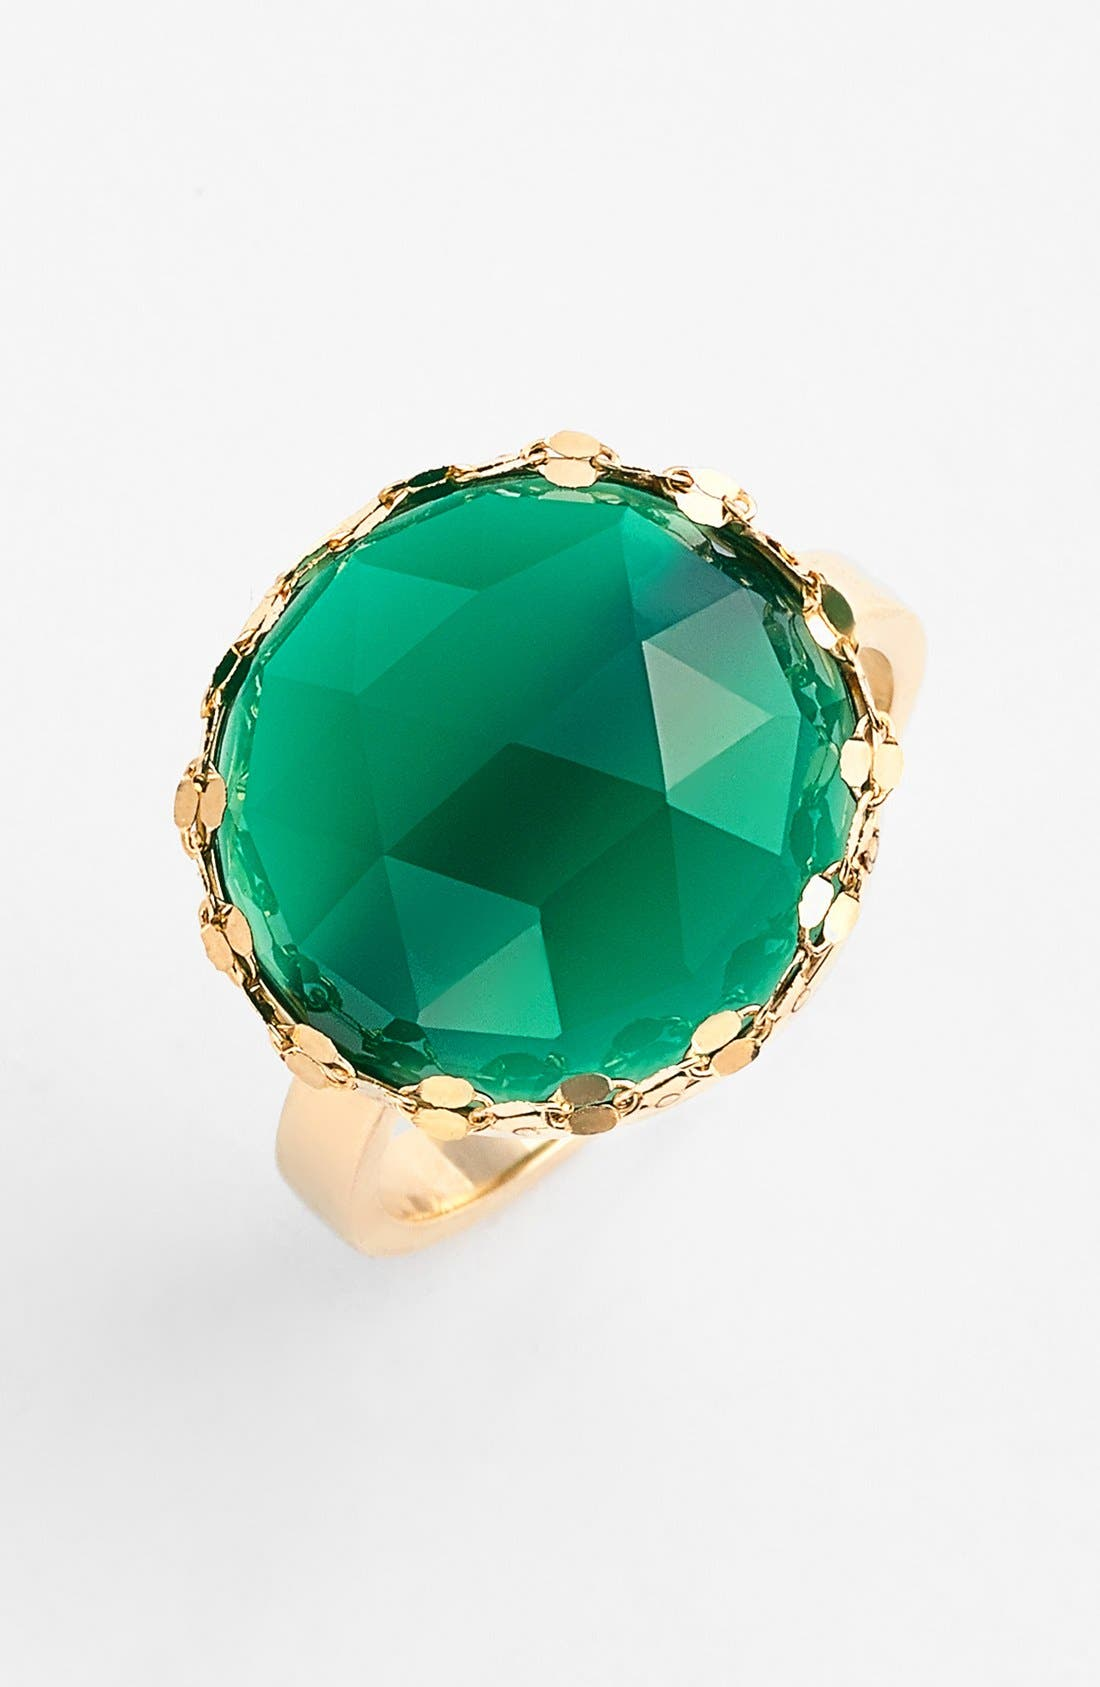 Main Image - Lana Jewelry 'Envy' Cocktail Ring